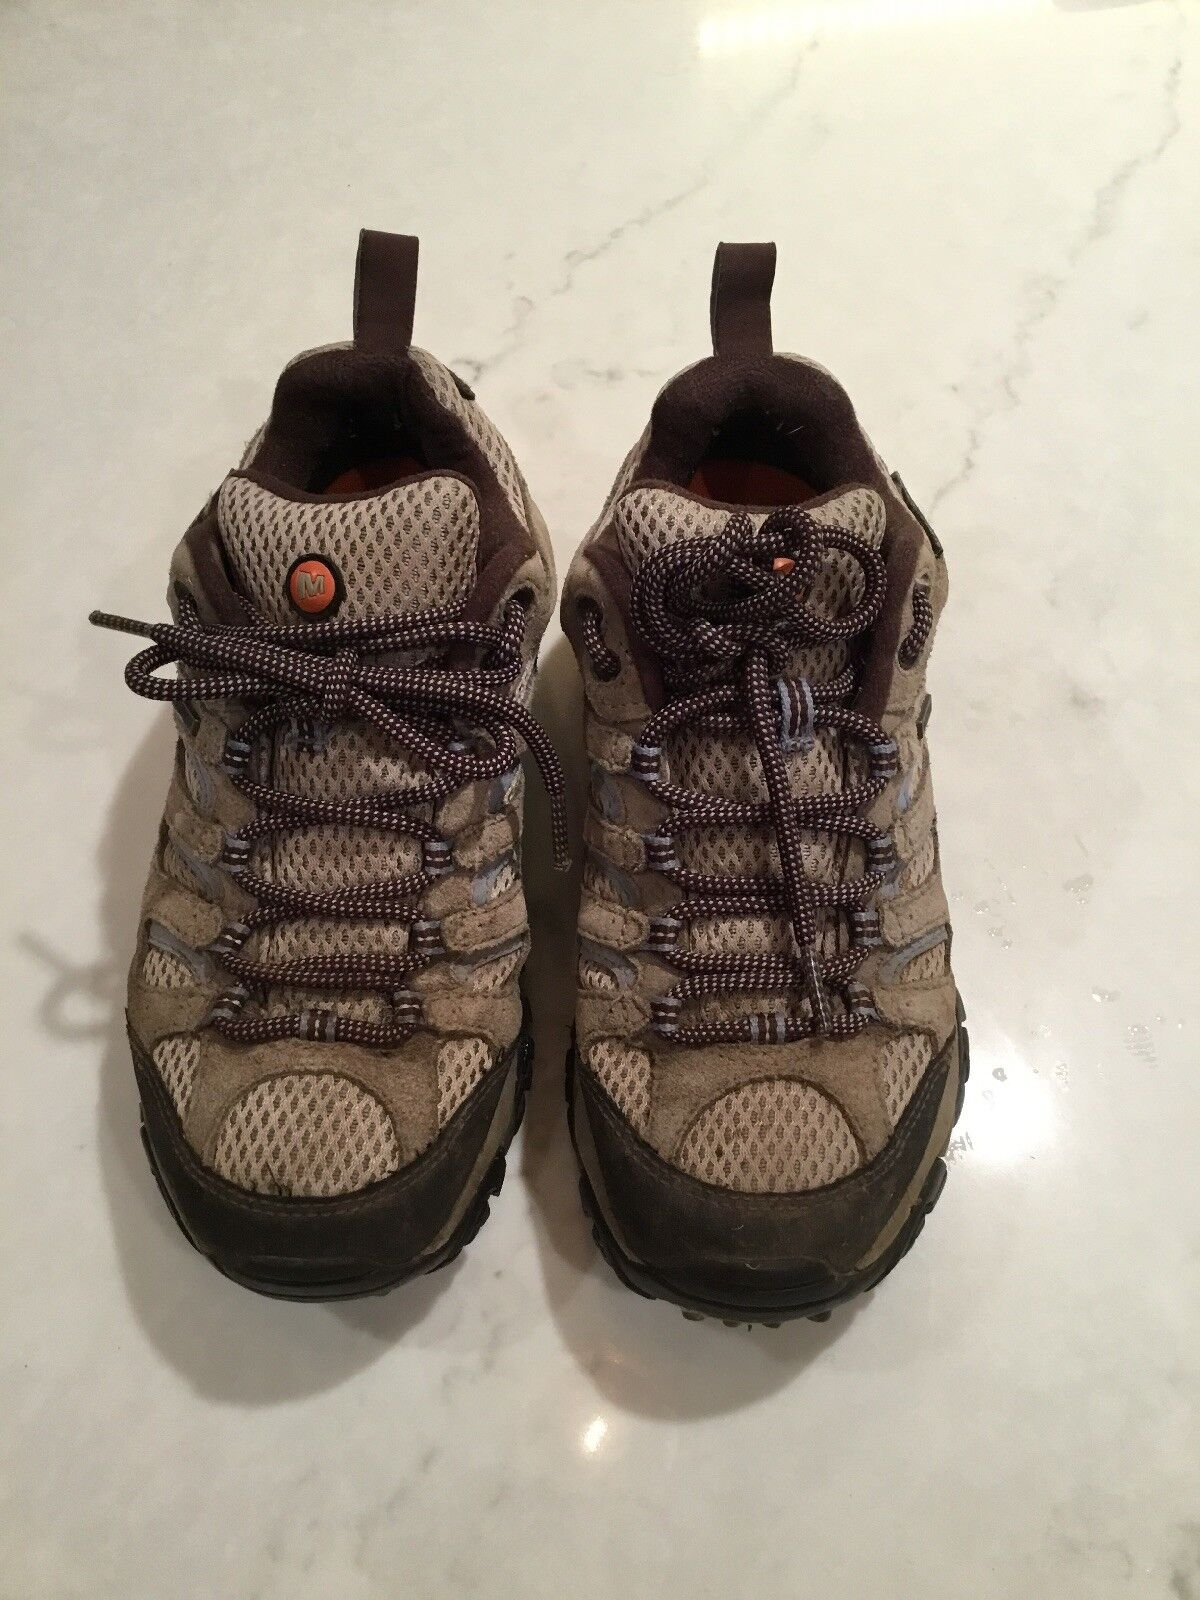 SHOES VIBRAM HIKING WOMENS DUSTY CONTINUUM MERRELL SIZE